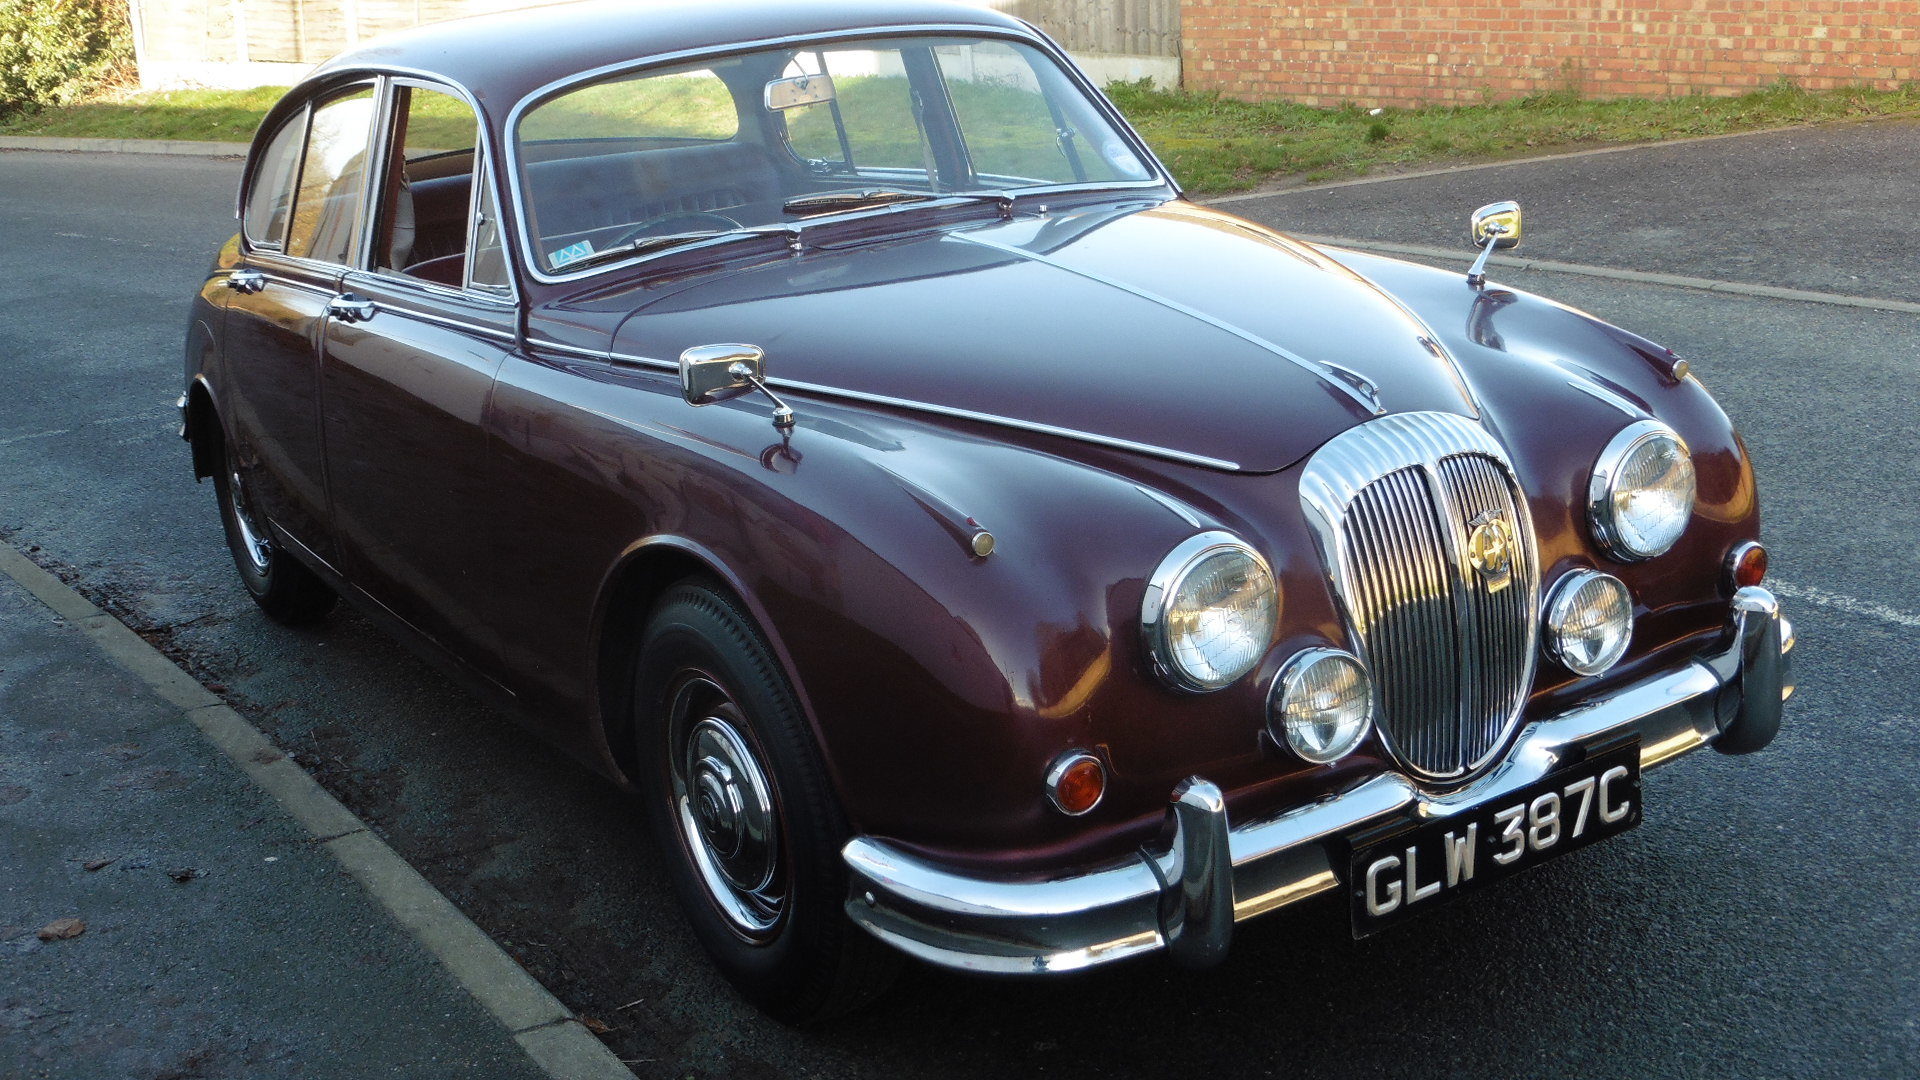 1965 Daimler V8 250 Just 2 Owners & 45,000 Miles Time Warp Cond. SOLD (picture 3 of 6)